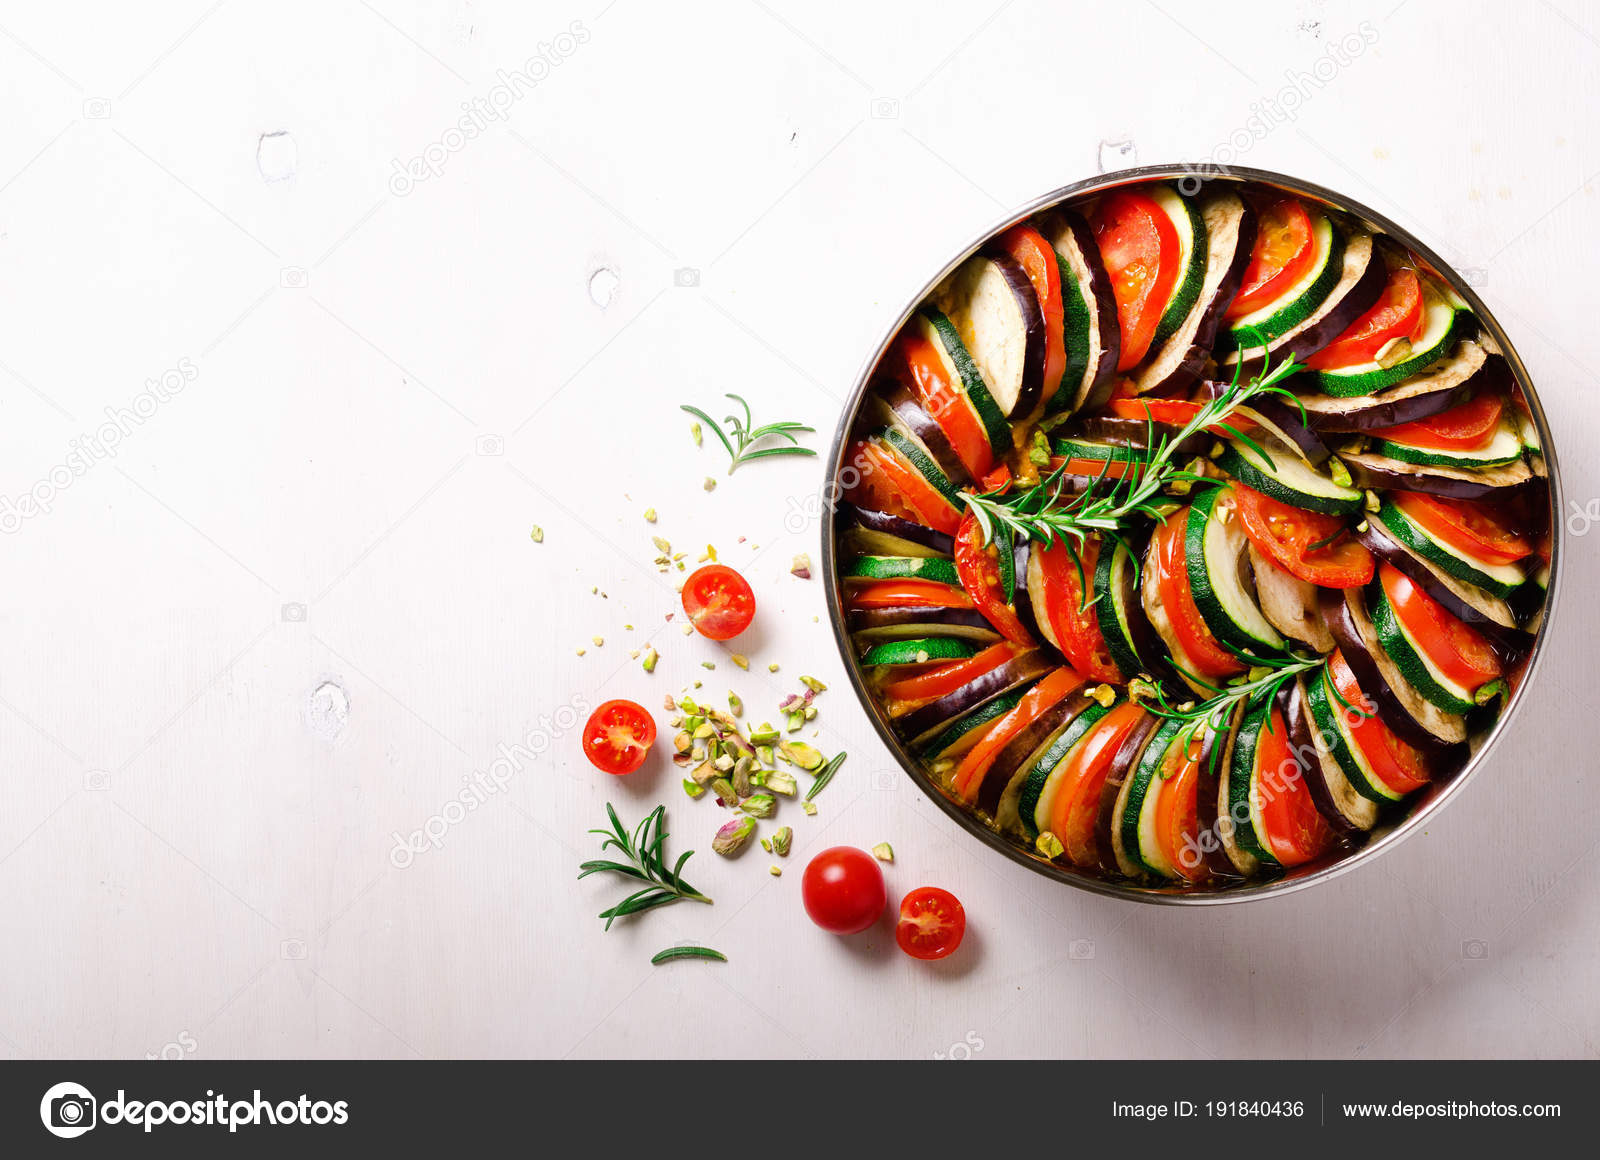 Ratatouille Traditional Homemade Vegetable Dish Vegetarian Vegan Food Copy Space Banner Stock Photo C J Chizhe 191840436